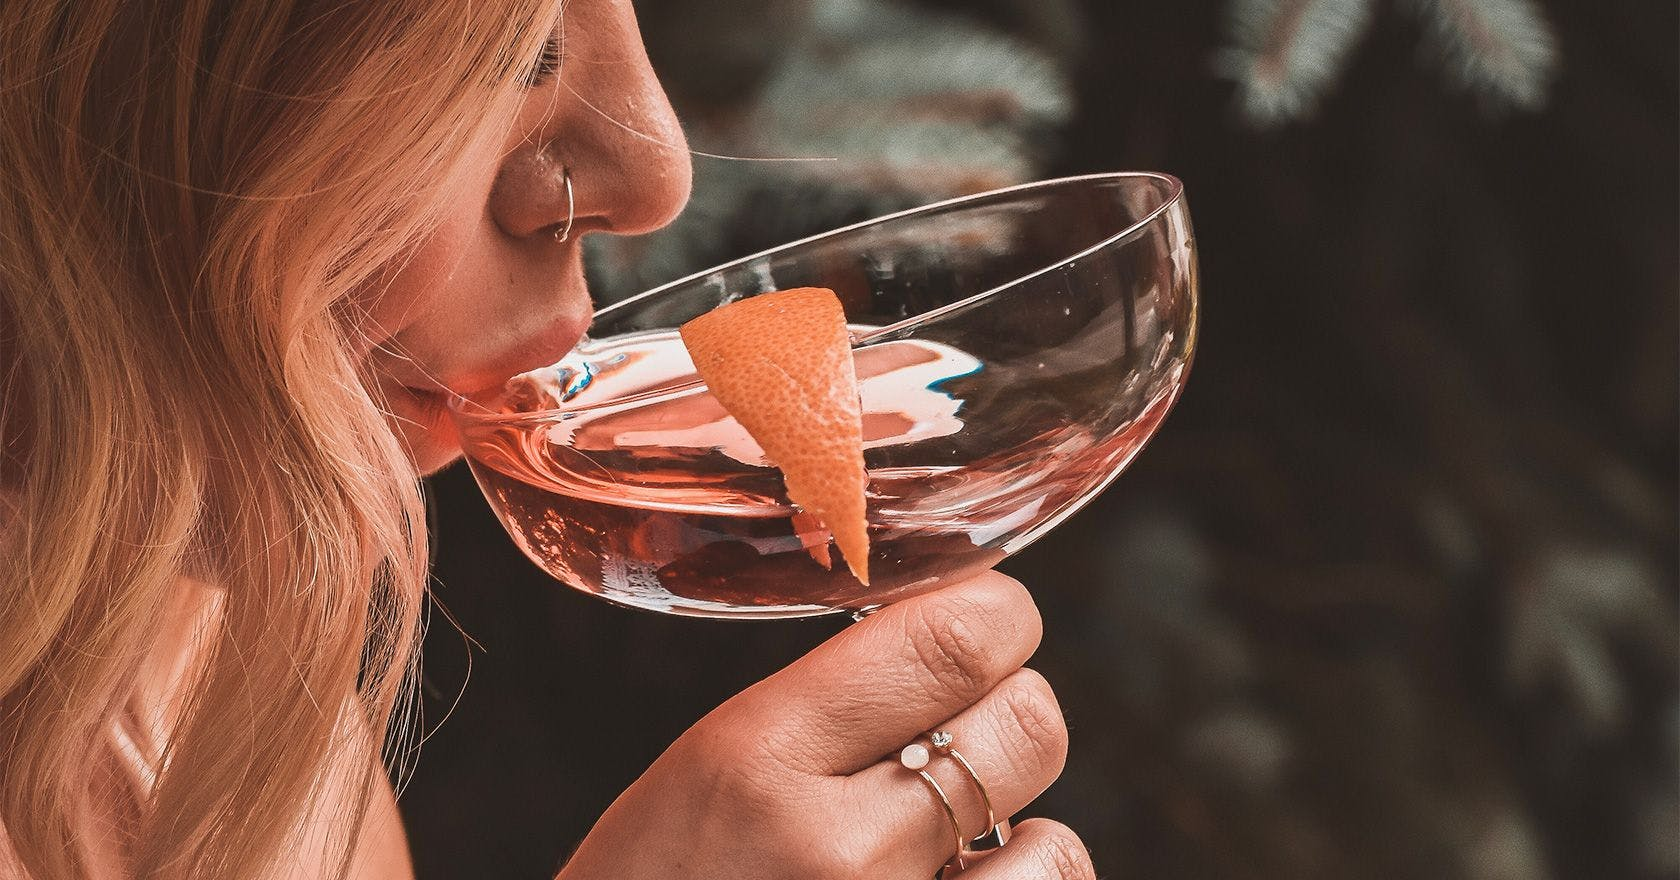 There are 3 types of drinking personalities, and this one's the most likely to binge